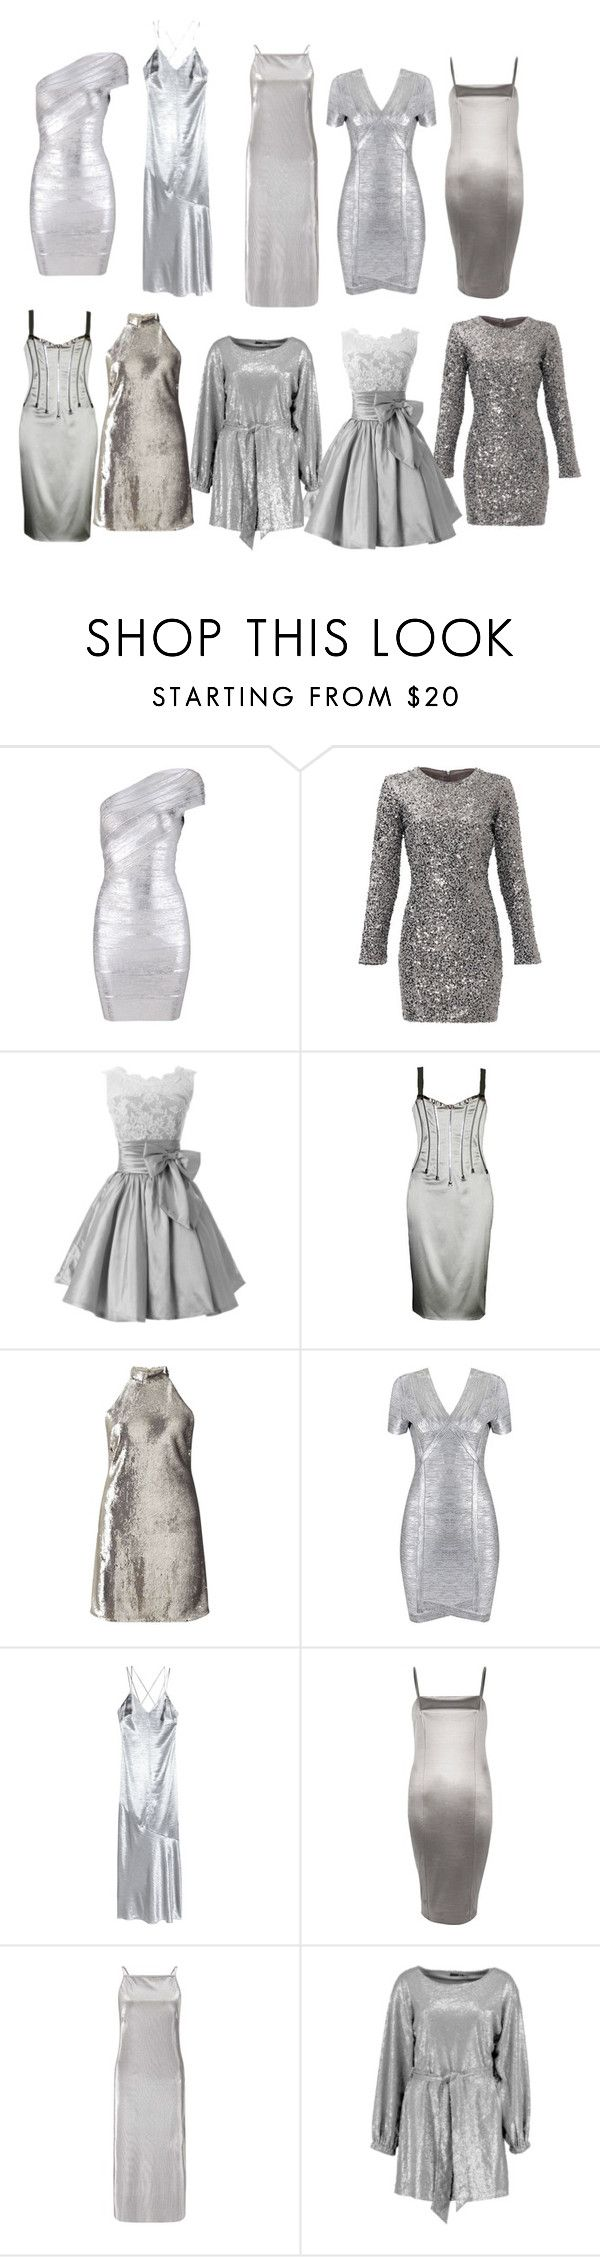 """""""Silver holiday party dresses"""" by ms-hinds ❤ liked on Polyvore featuring Slate & Willow, Dolce&Gabbana, Miss Selfridge, River Island and Boohoo"""